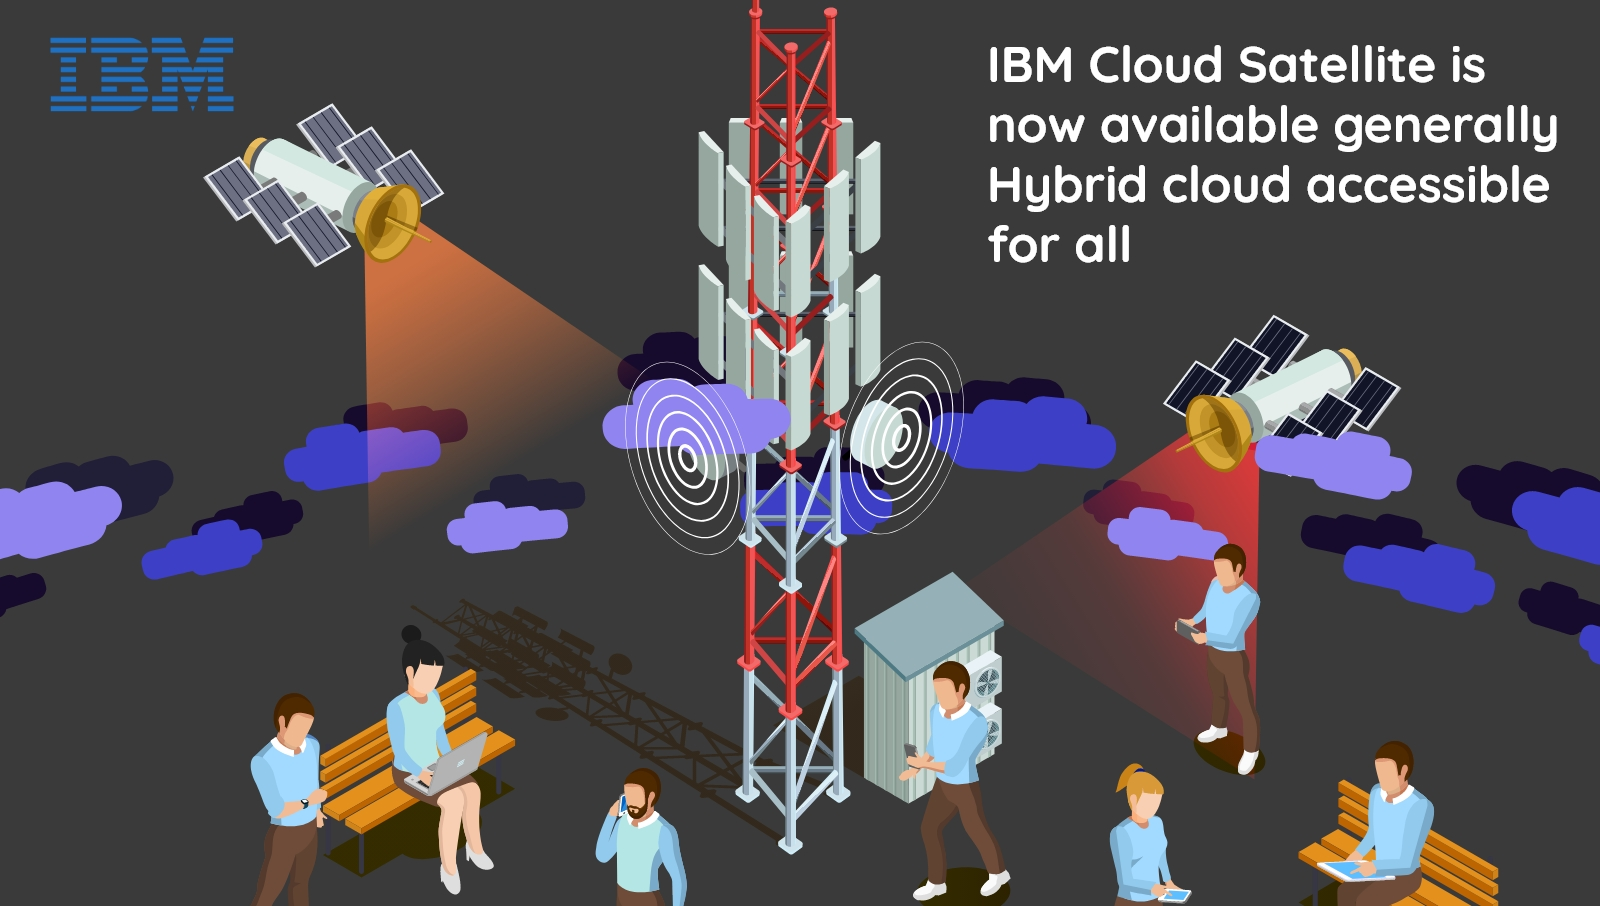 IBM-Cloud-Satellite-is-now-available-generally-image